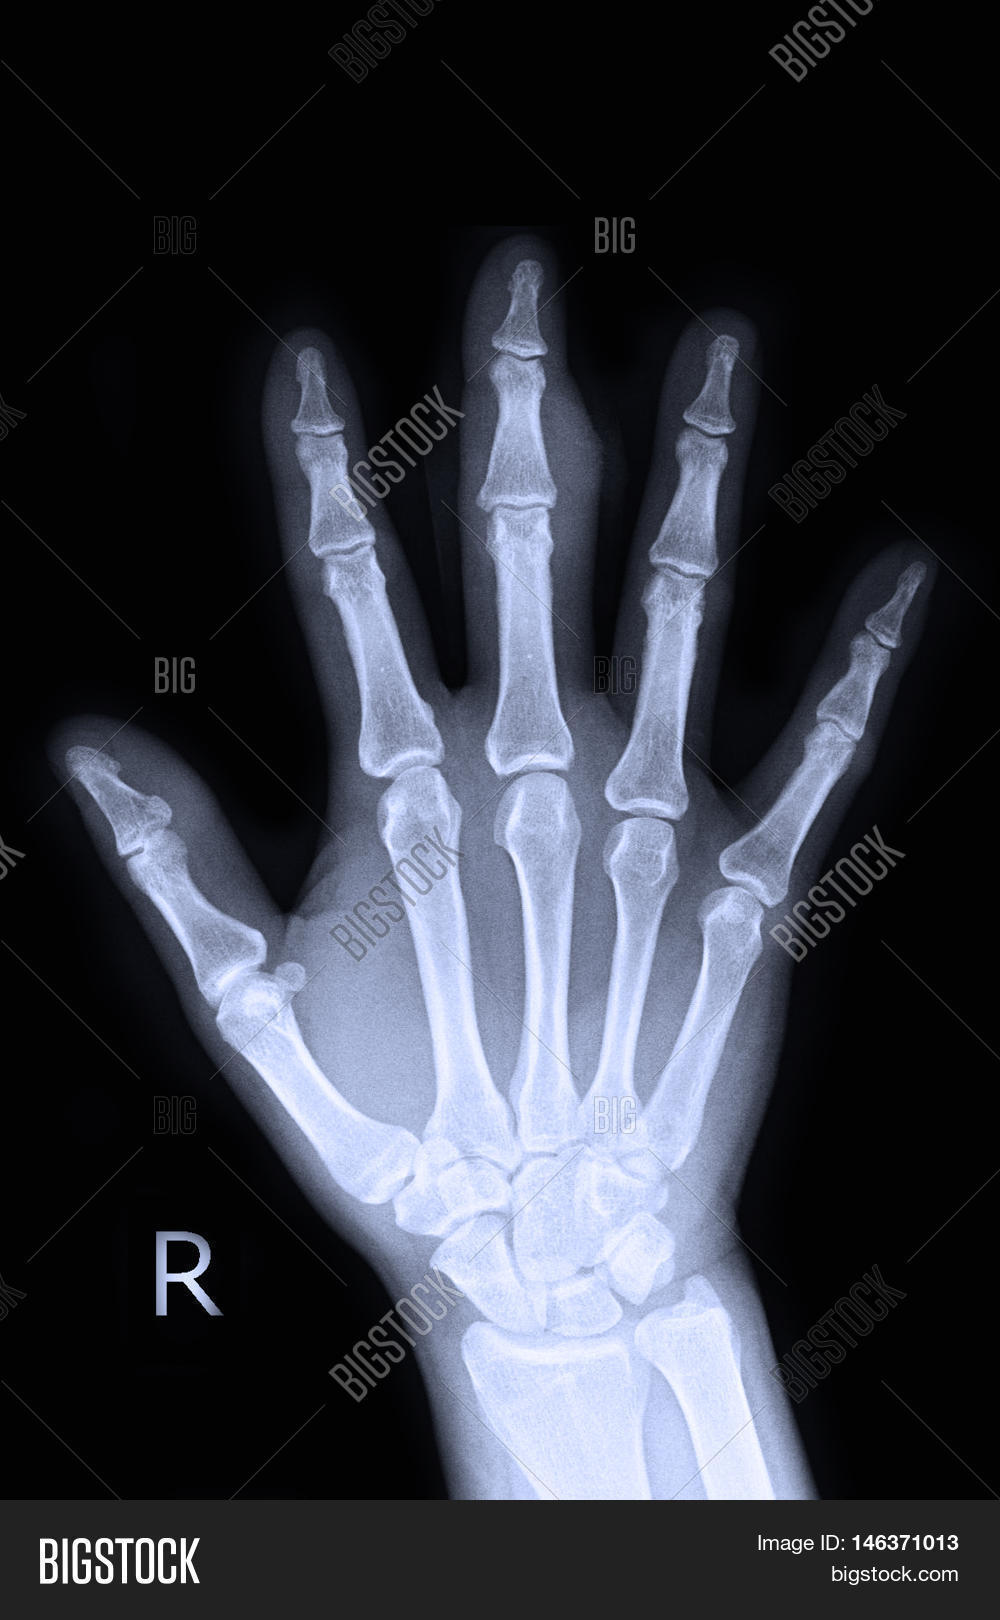 Xray Right Hand Finger Image & Photo (Free Trial) | Bigstock